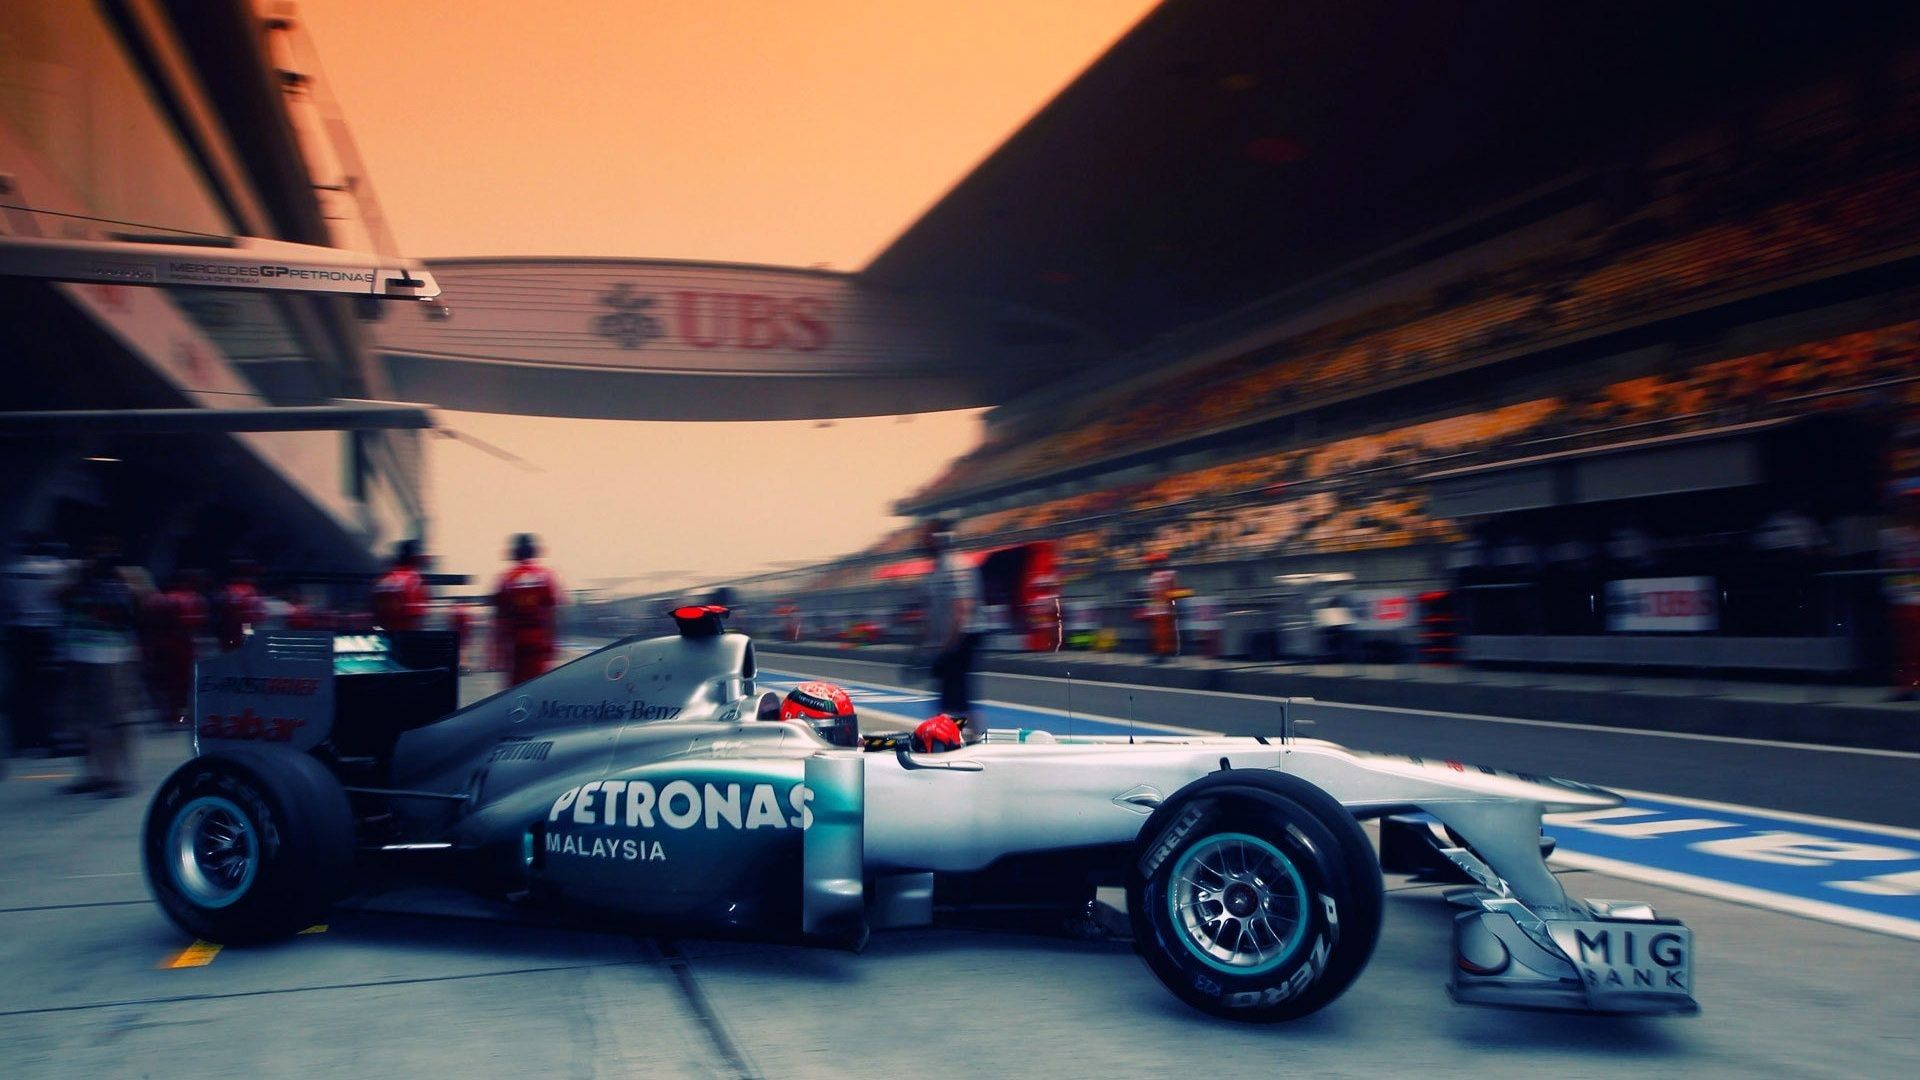 F1 Mercedes Wallpaper HD Resolution #klH | Cars | Pinterest | Amg petronas,  Mercedes AMG and Cars